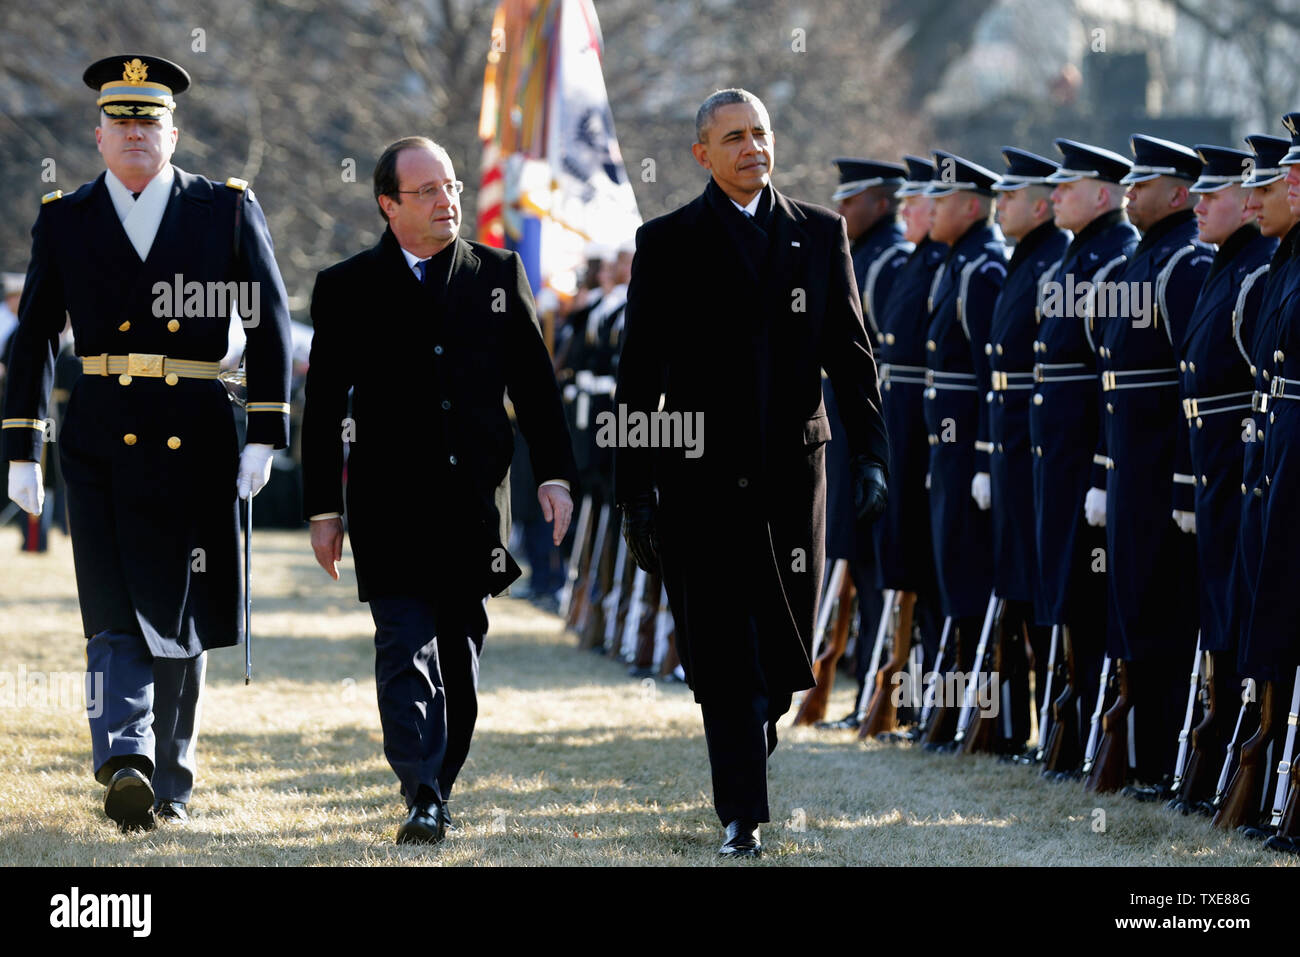 WASHINGTON, DC - FEBRUARY 11:  (AFP OUT)  U.S. President Barack Obama (R) walks with French President Francois Hollande (C) for a military review during a welcoming ceremony on the South Lawn at the White House on February 11, 2014 in Washington, DC. Hollande who arrived yesterday for a three day state visit, visited Thomas Jefferson's Monticello estate and will be the guest of honor for a state dinner tonight.  (Photo by Chip Somodevilla/Getty Images) - Stock Image